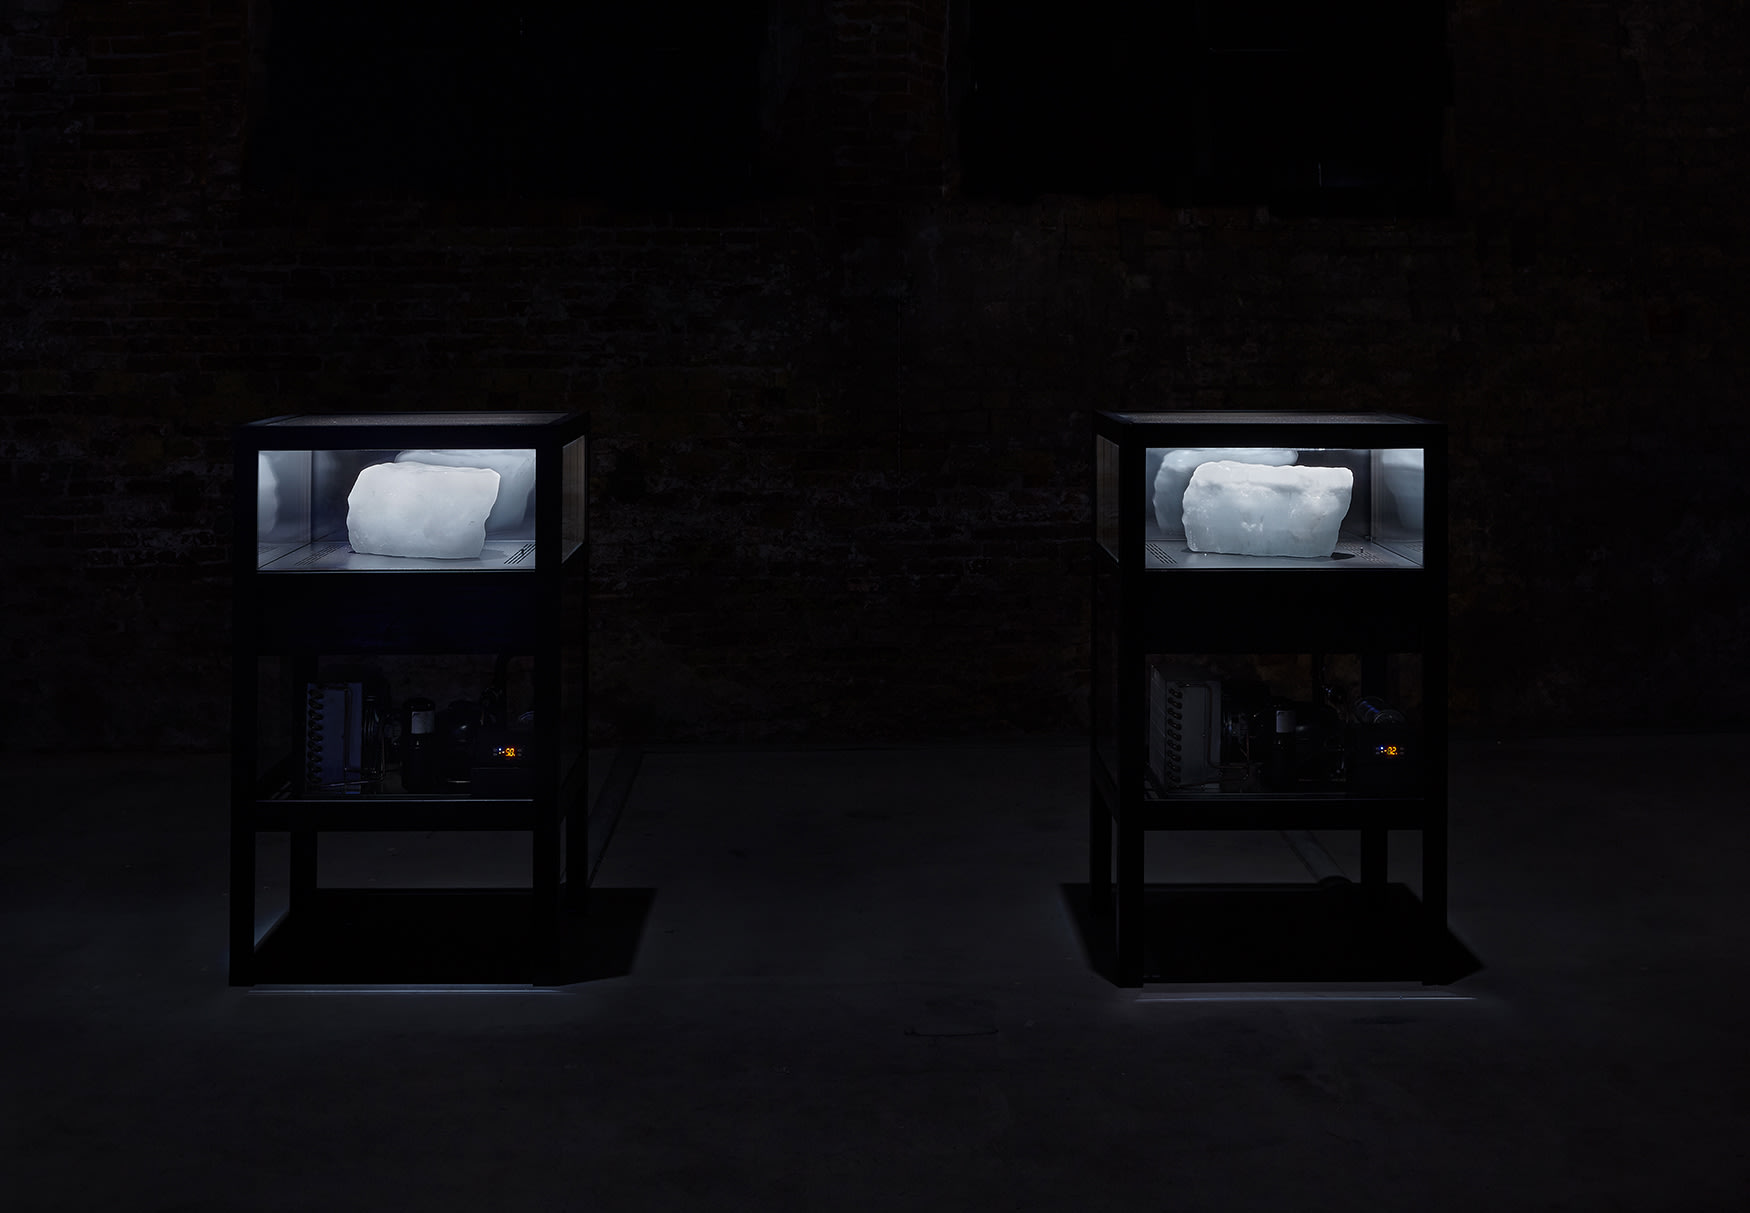 An installation view of two glass refrigerators with blocks of ice by Tavares Strachan